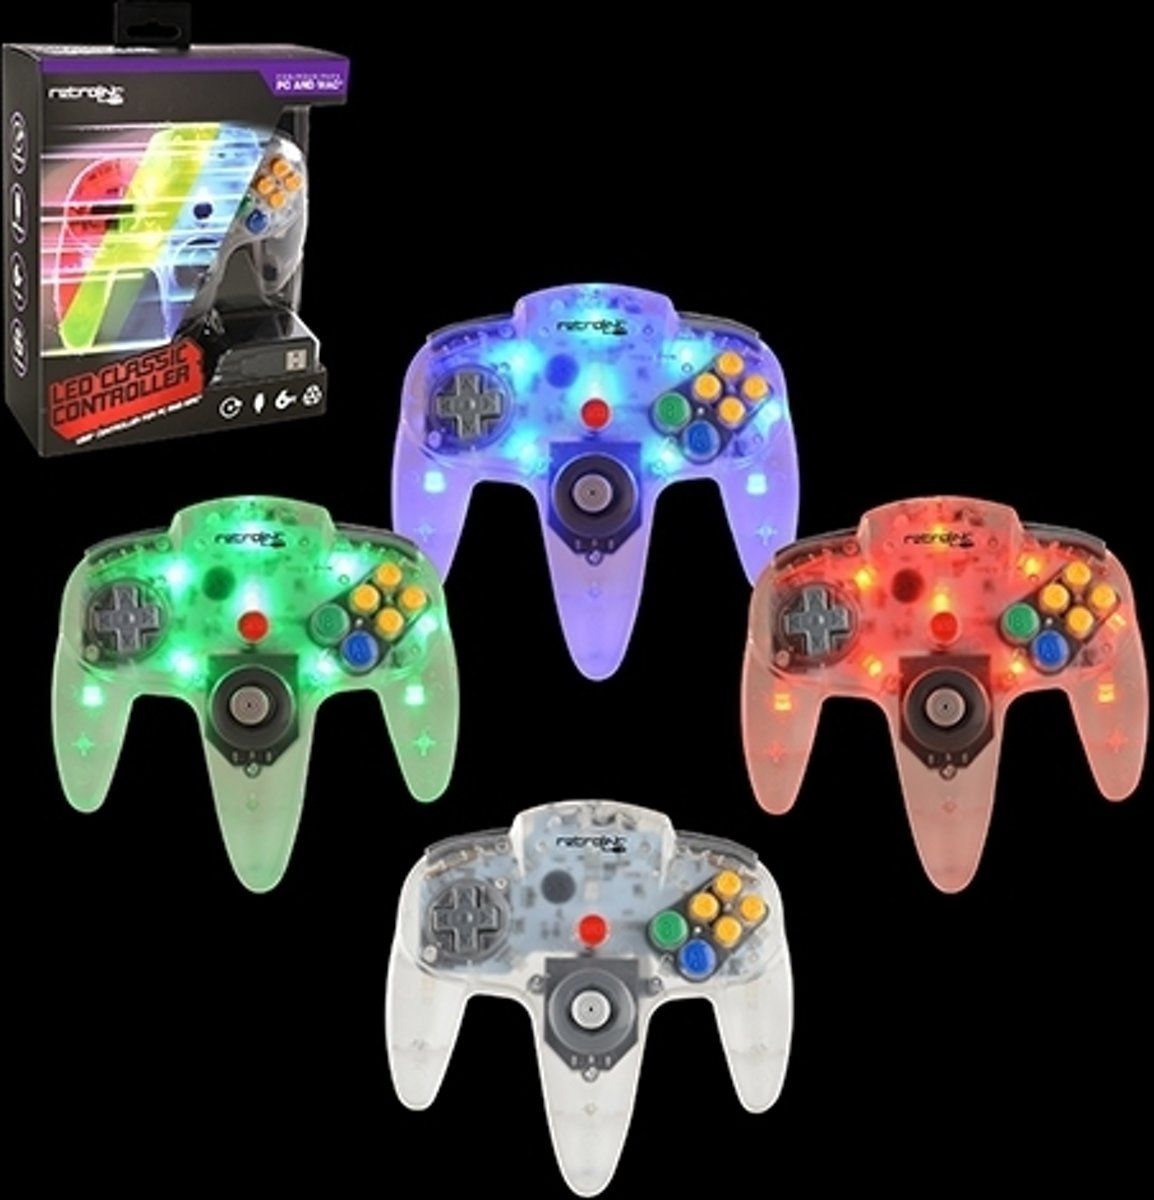 N64 Style USB Controller (Blue/Red/Green LED)